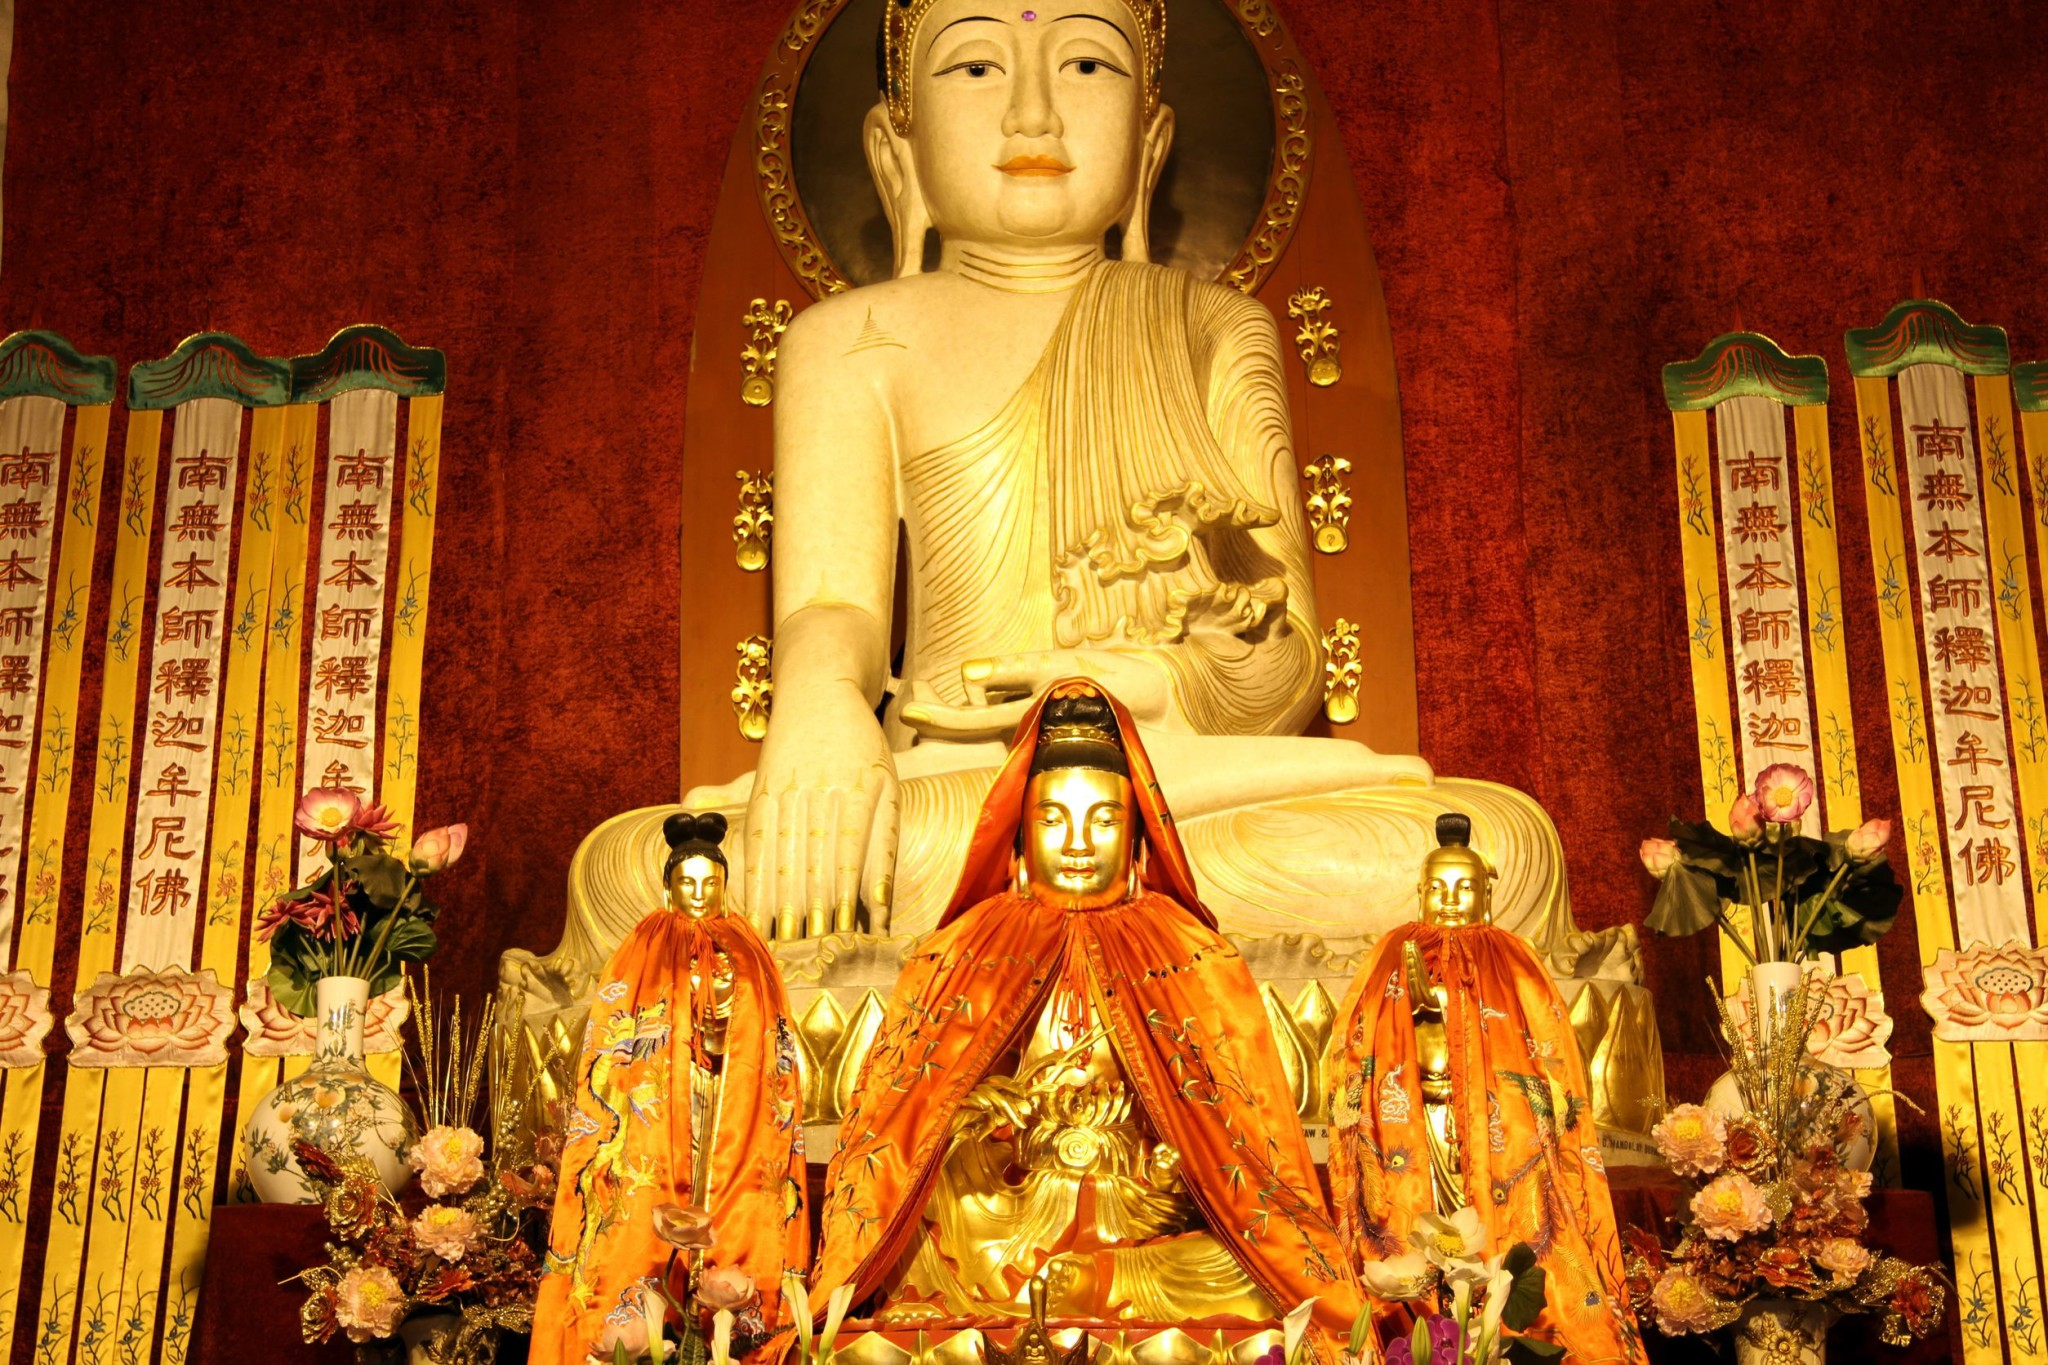 Buddha statue in Jingan temple in Shanghai, China